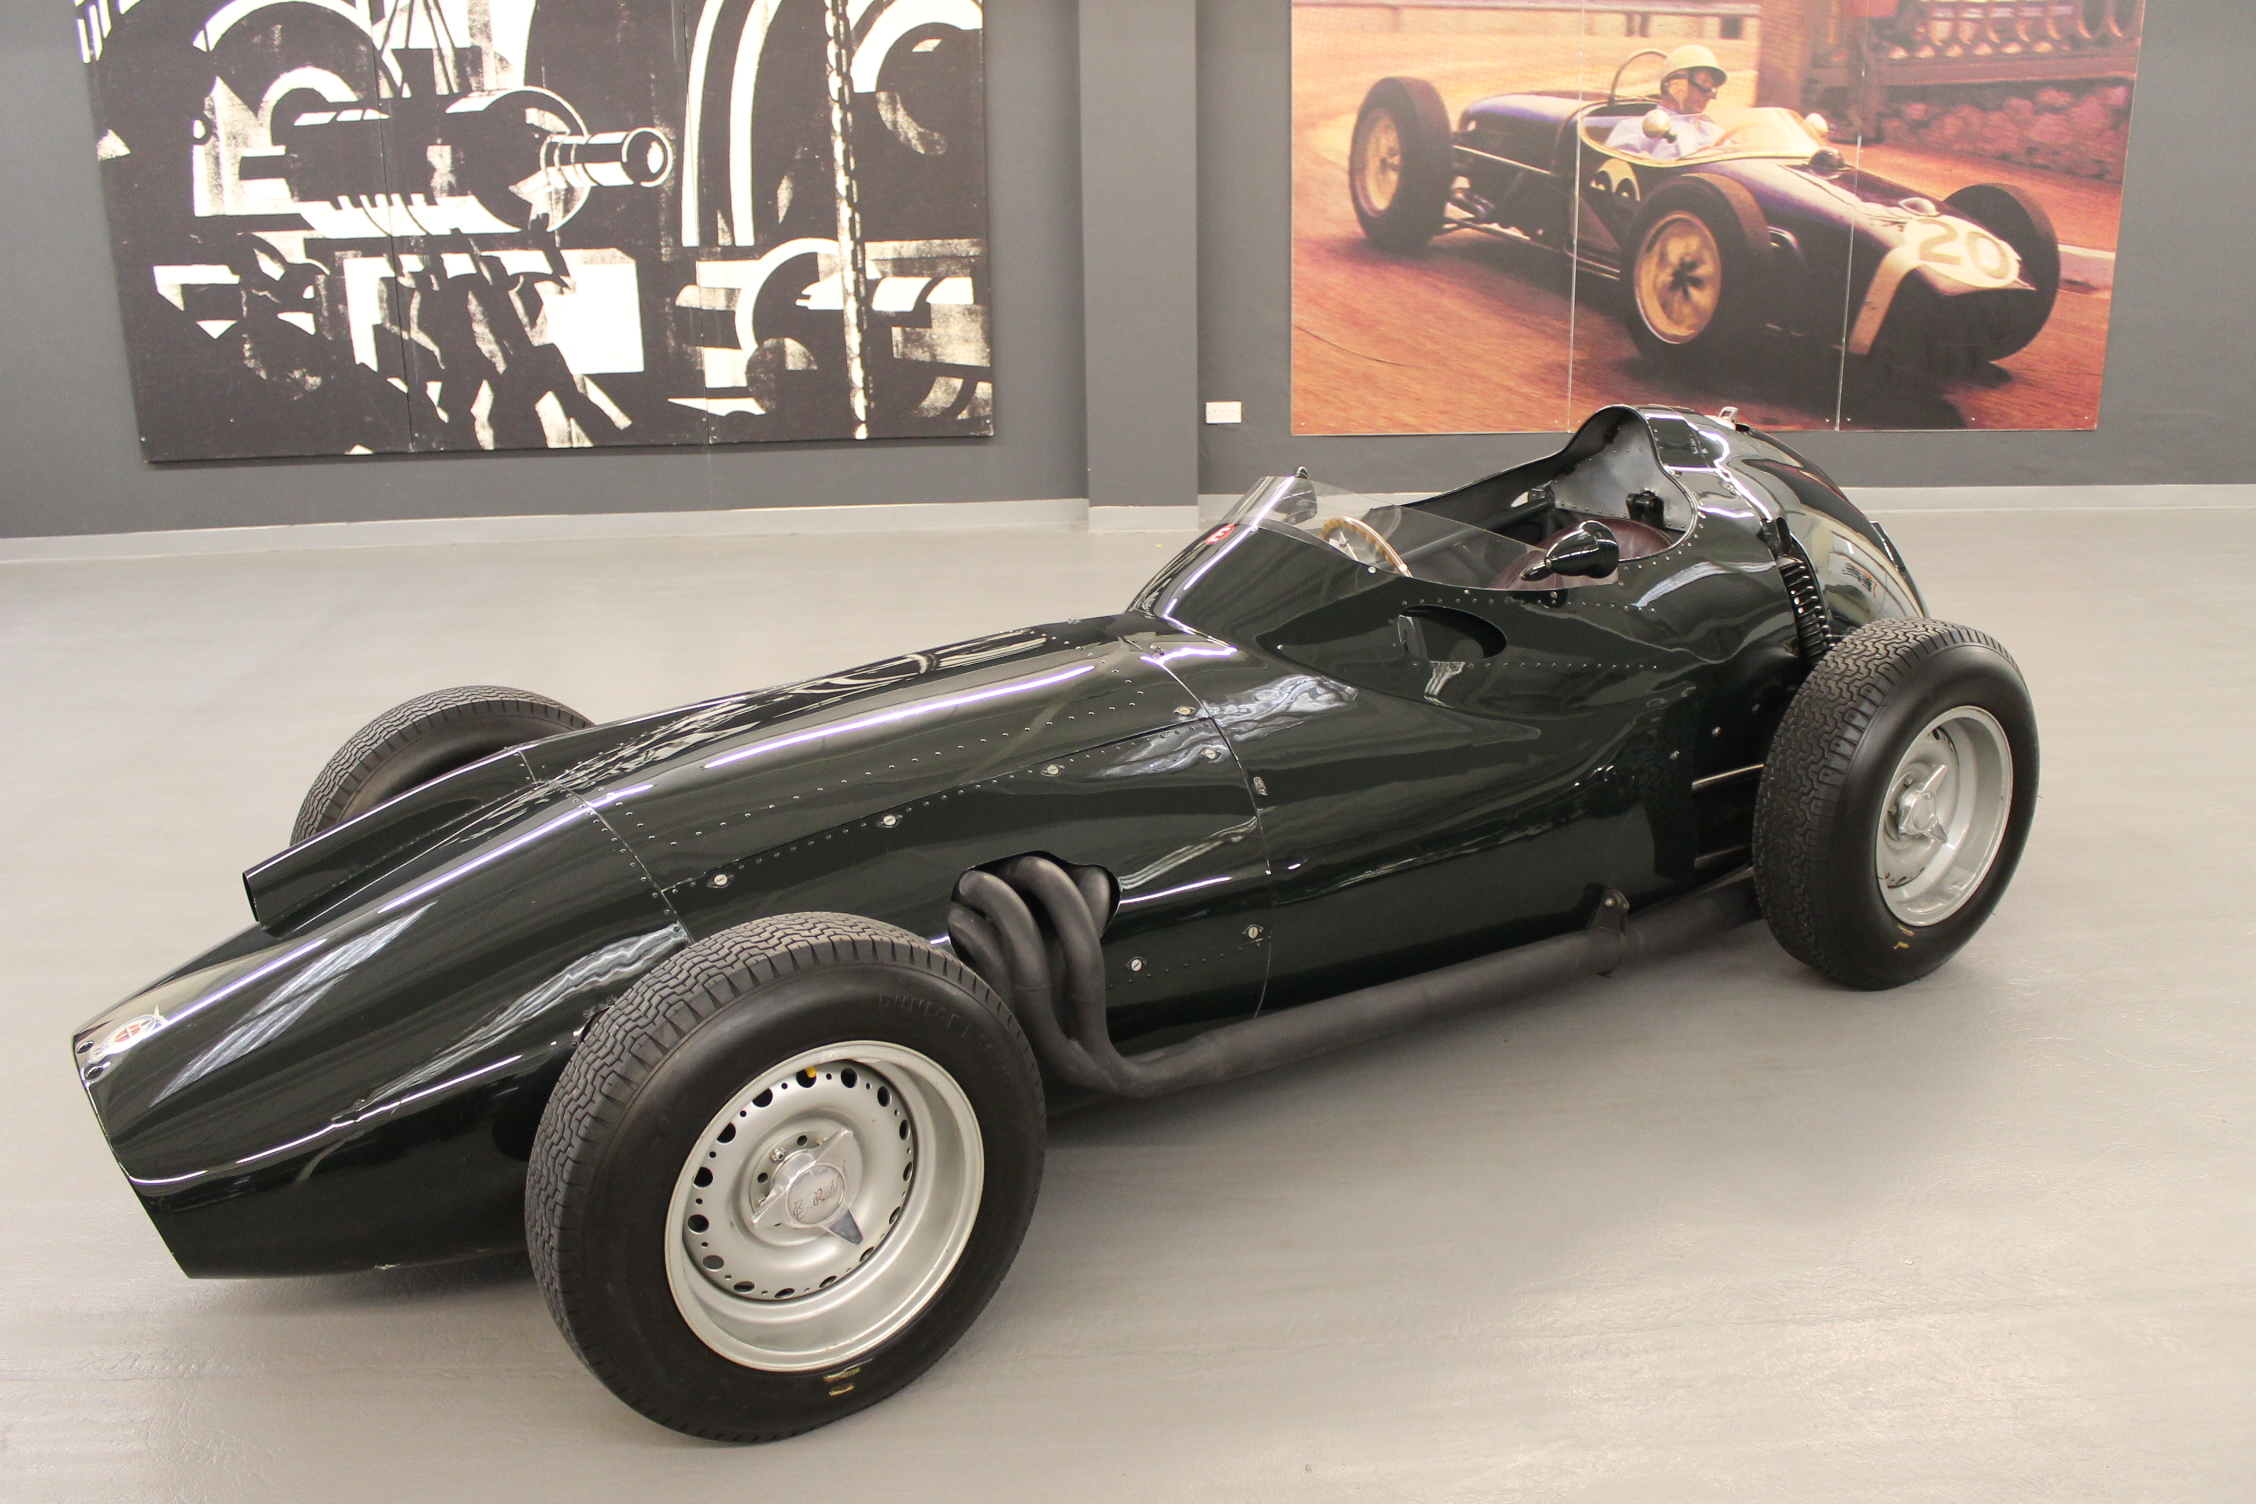 BRM P25 1958 F1 car from Bourne, Lincs